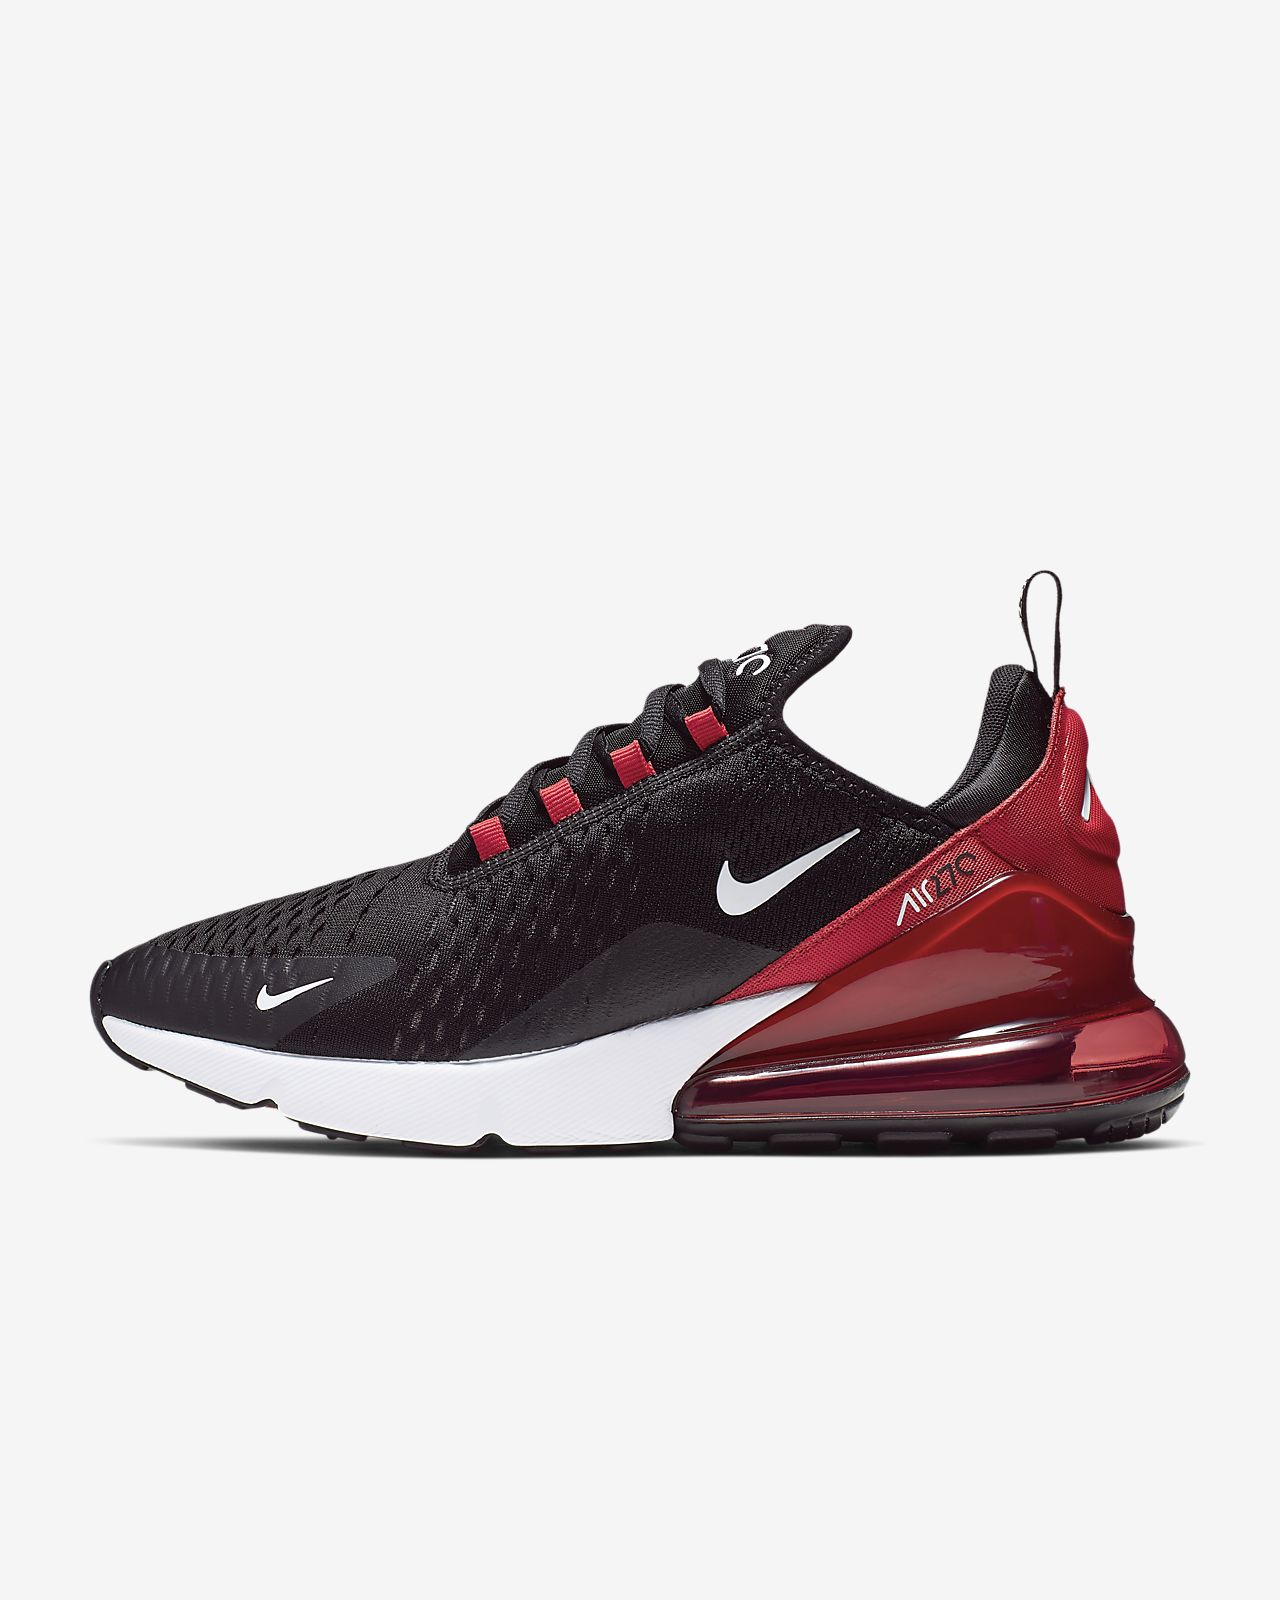 cheap for discount 2feb7 01414 ... Chaussure Nike Air Max 270 pour Homme